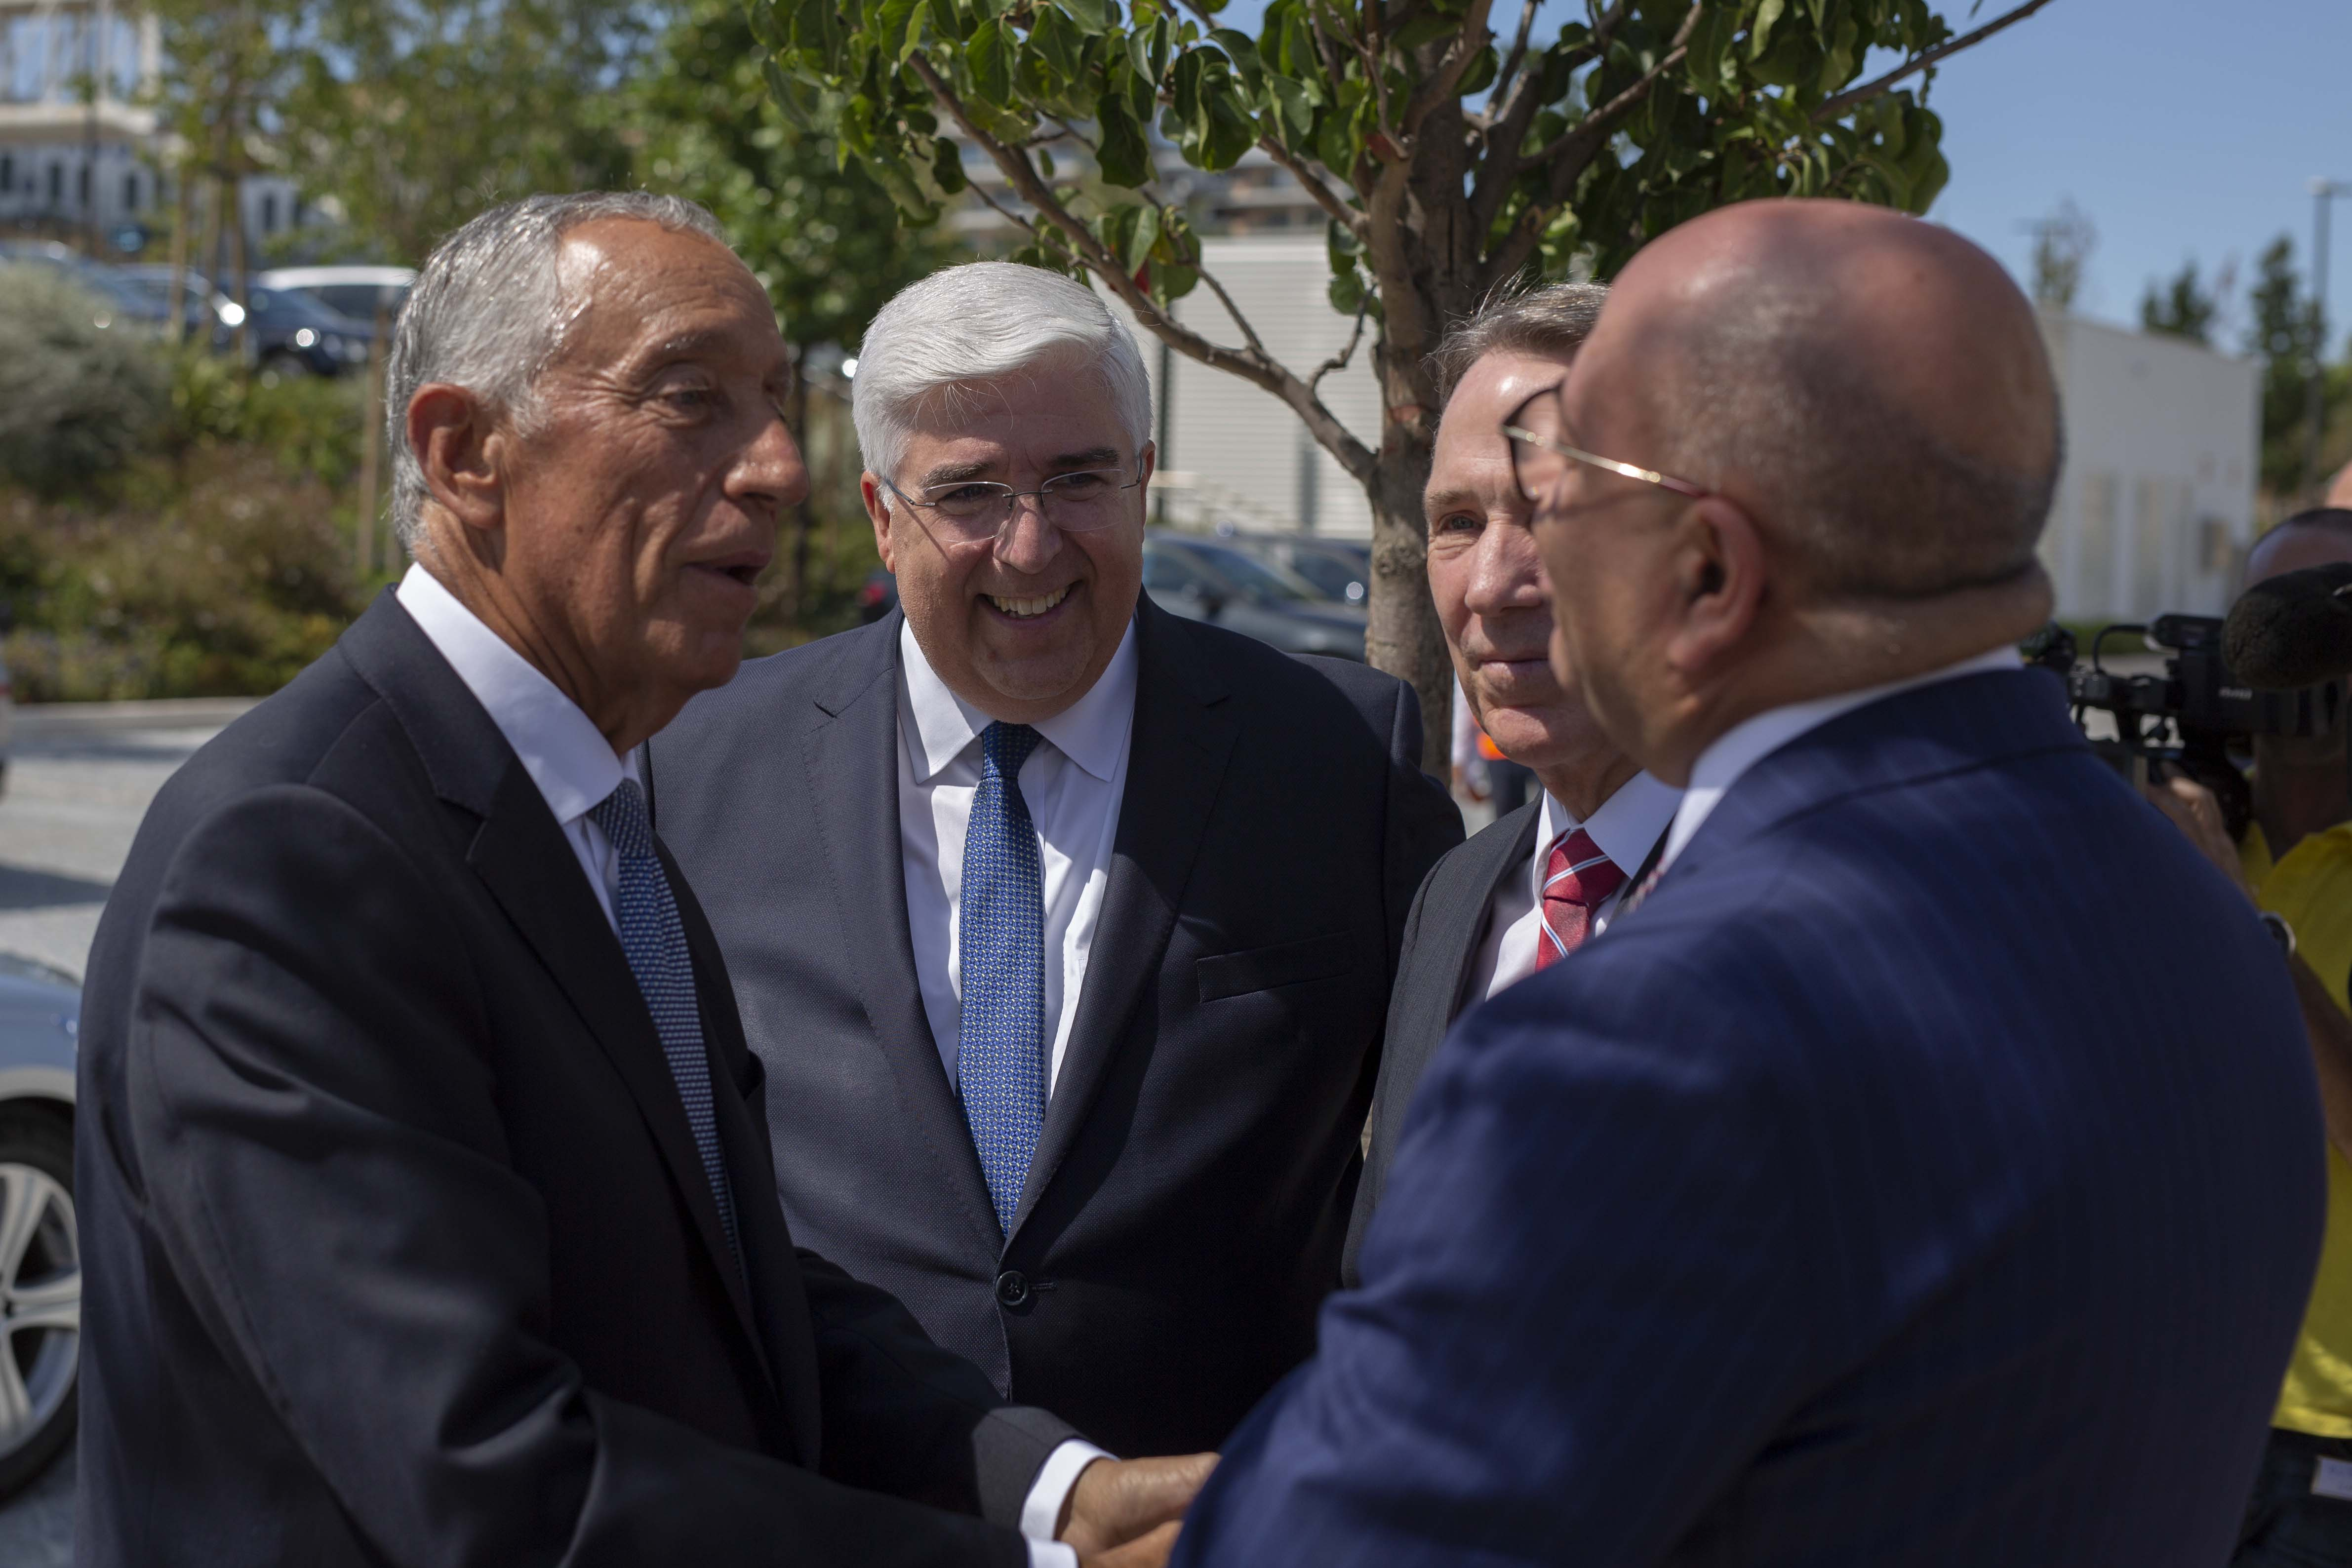 Portugal President Marcelo Rebelo de Sousa is greeted by Elder José A. Teixeira of the Presidency of the Seventy; Elder Gary B. Sabin, president of the Europe Area of the Church; and Elder Joaquim Moreira, Area Seventy; upon his arrival at the Lisbon Portugal Temple on Aug. 29, 2019.